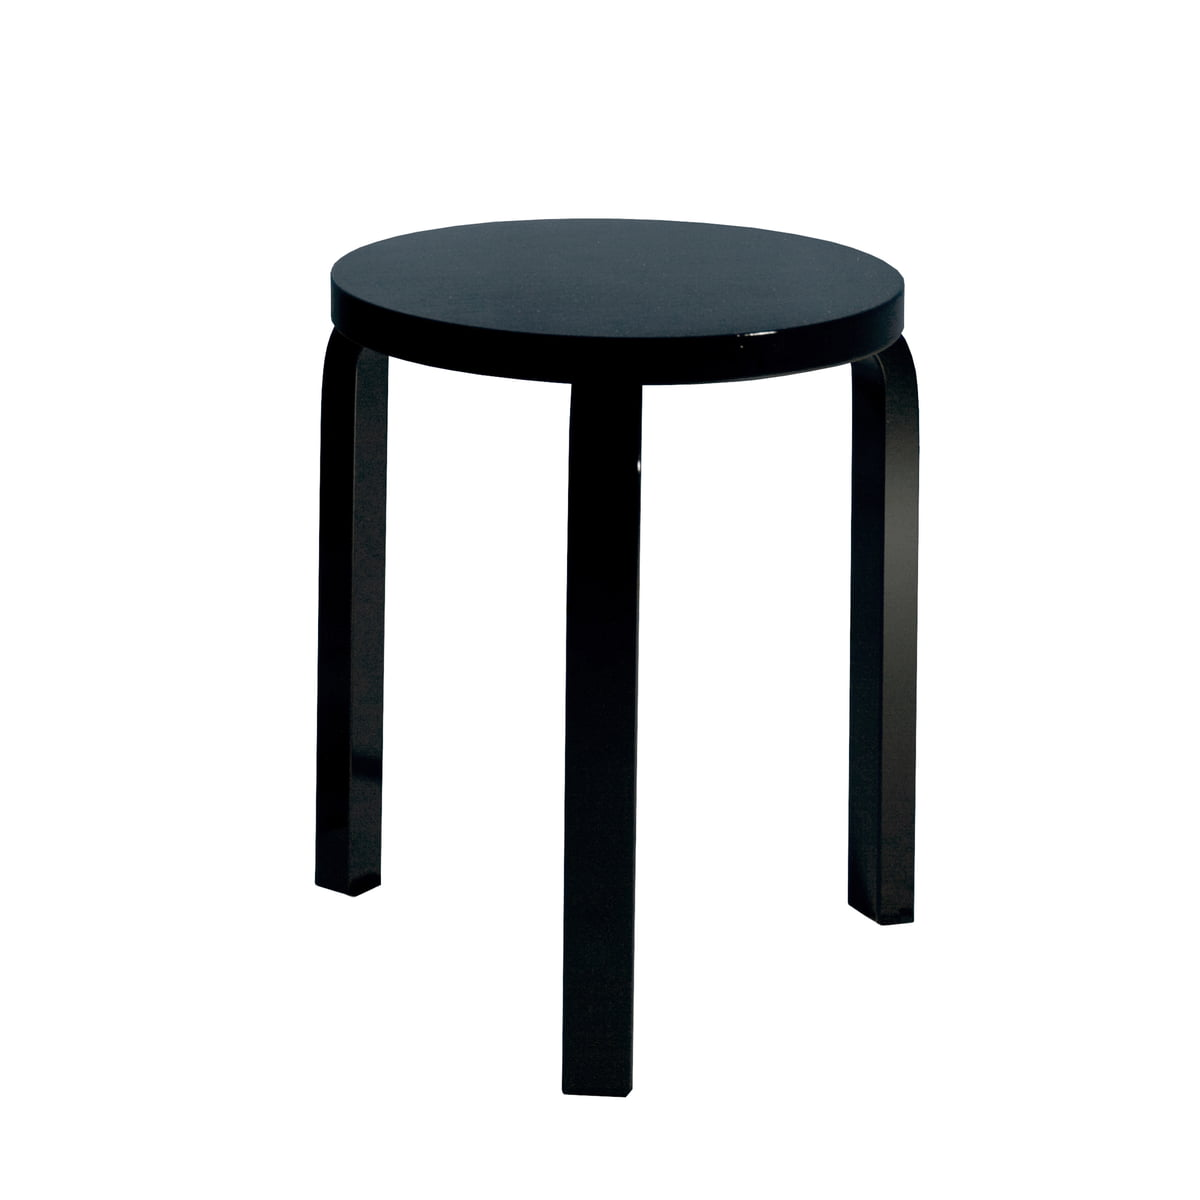 the stool 60 by artek in the shop